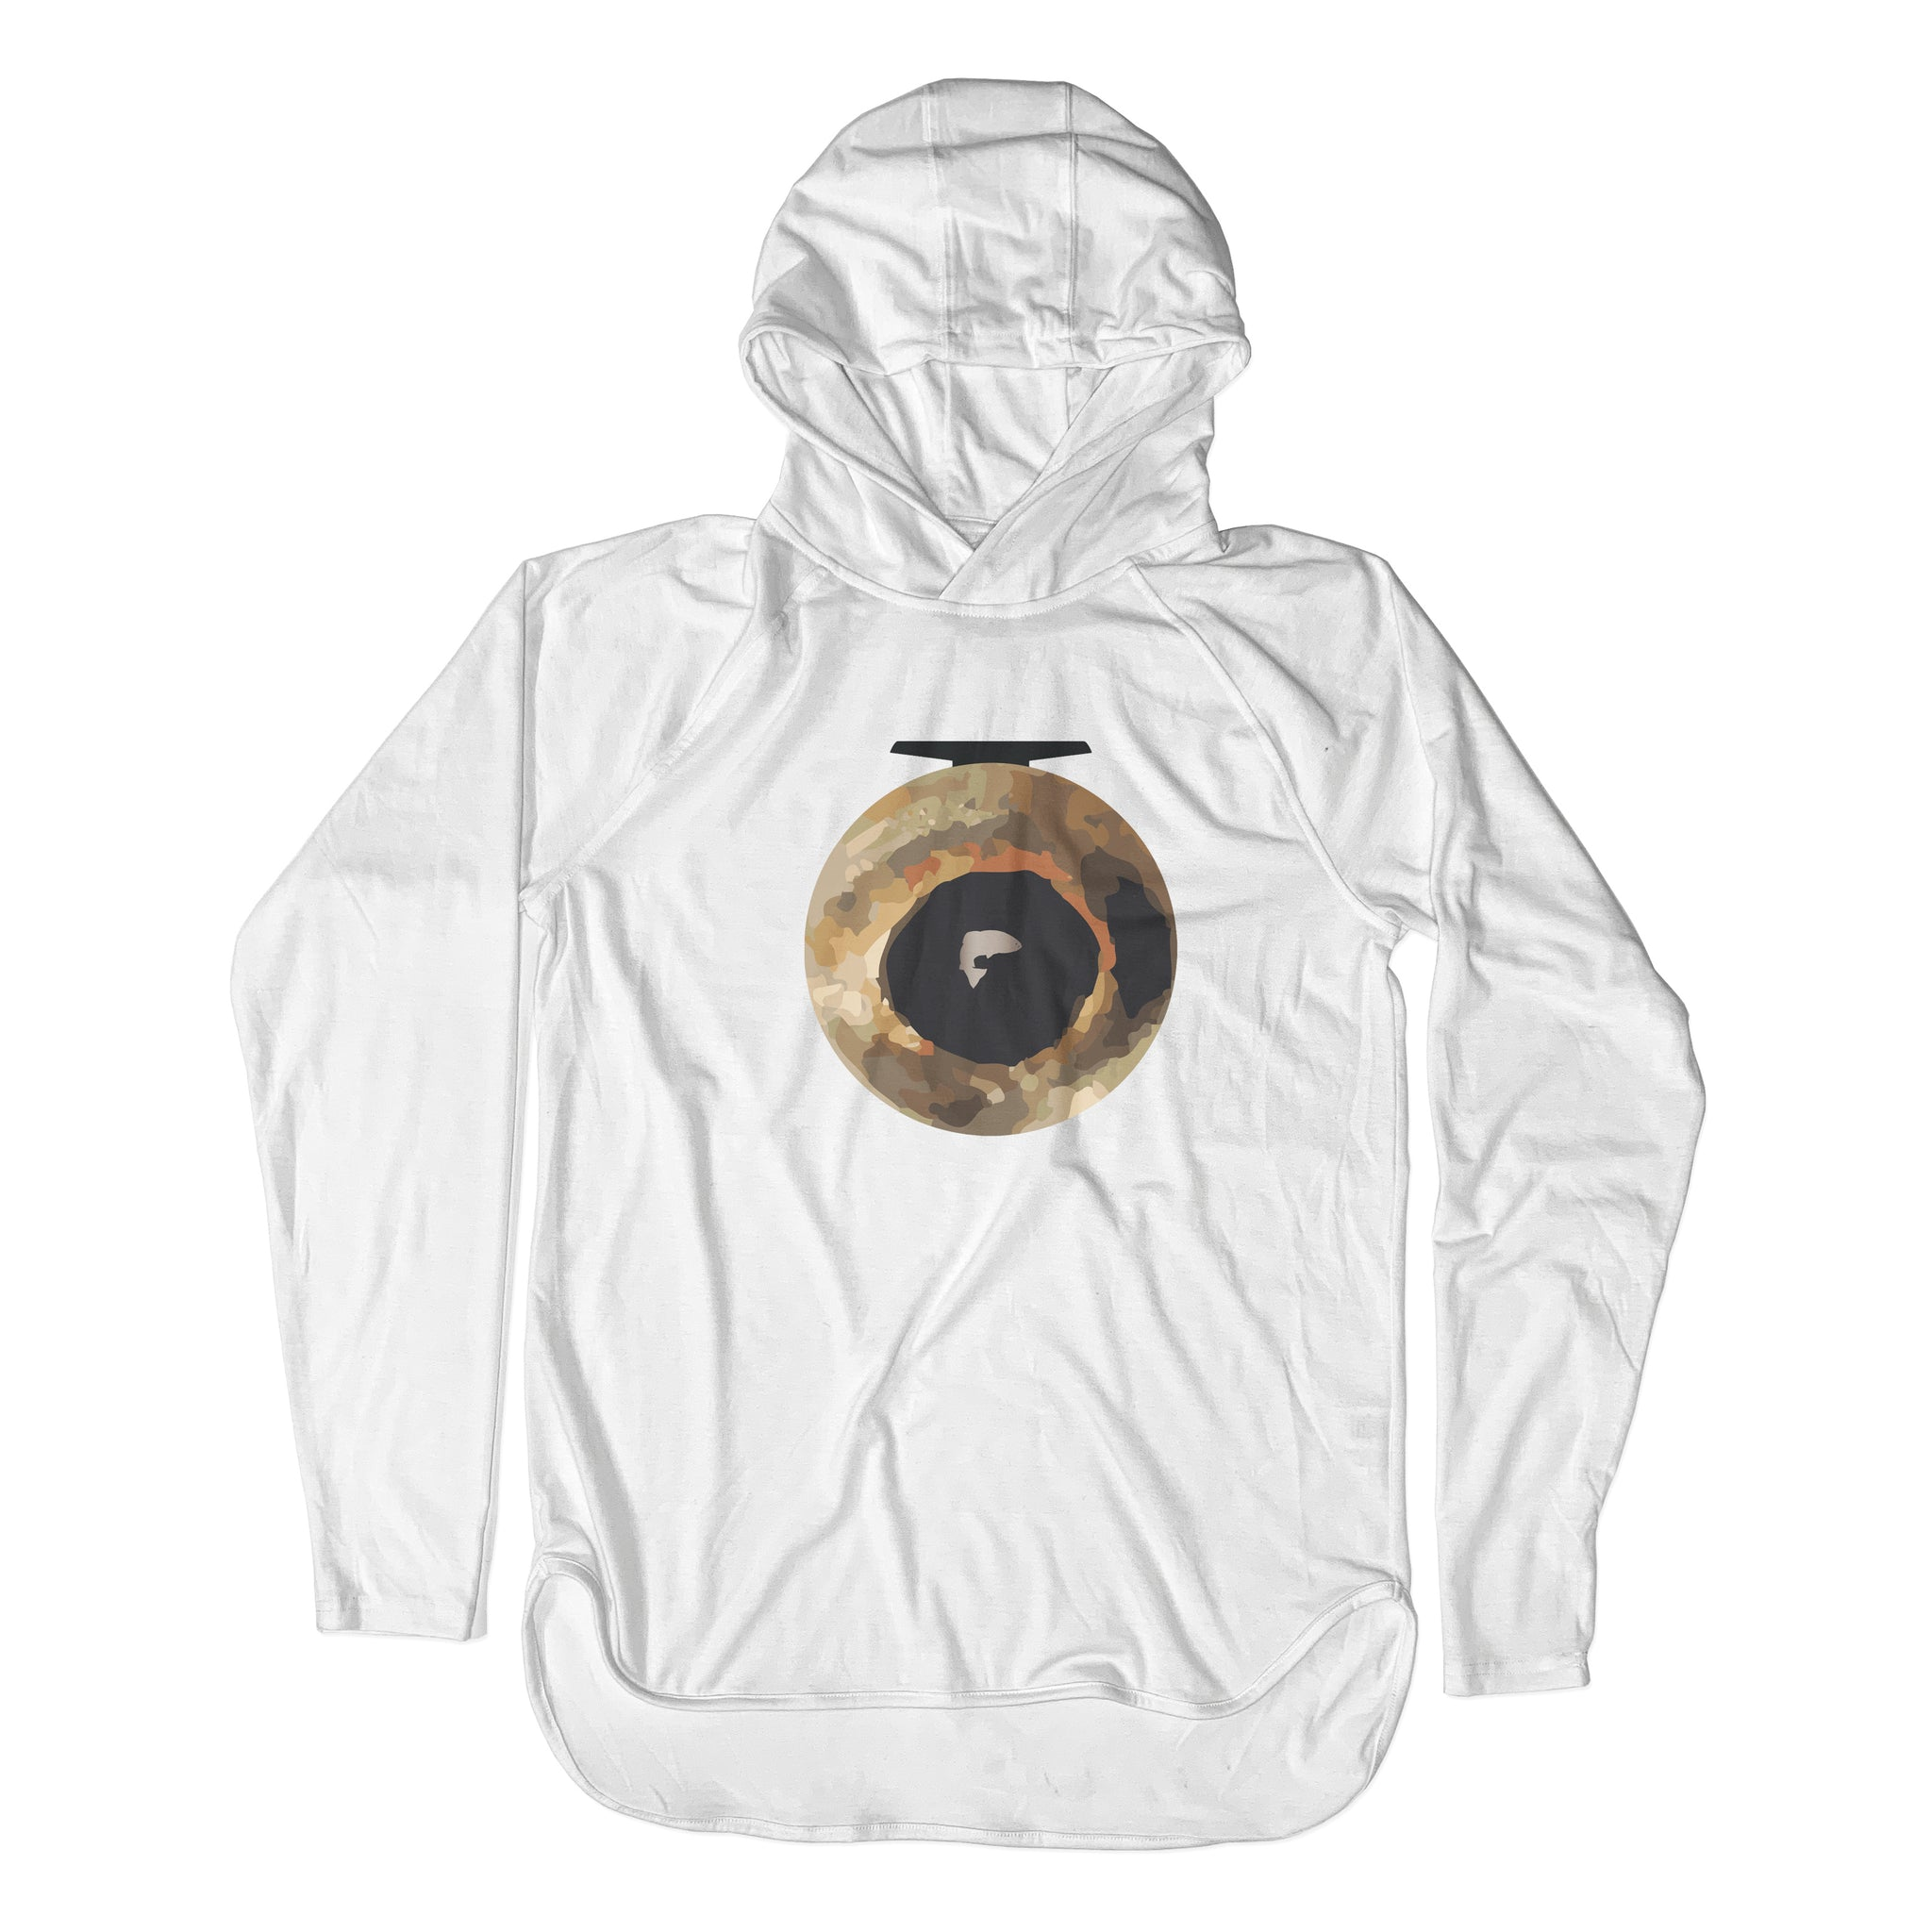 Xtreme Performance Pullover Sun Hoodie - Fish Eye - Unisex